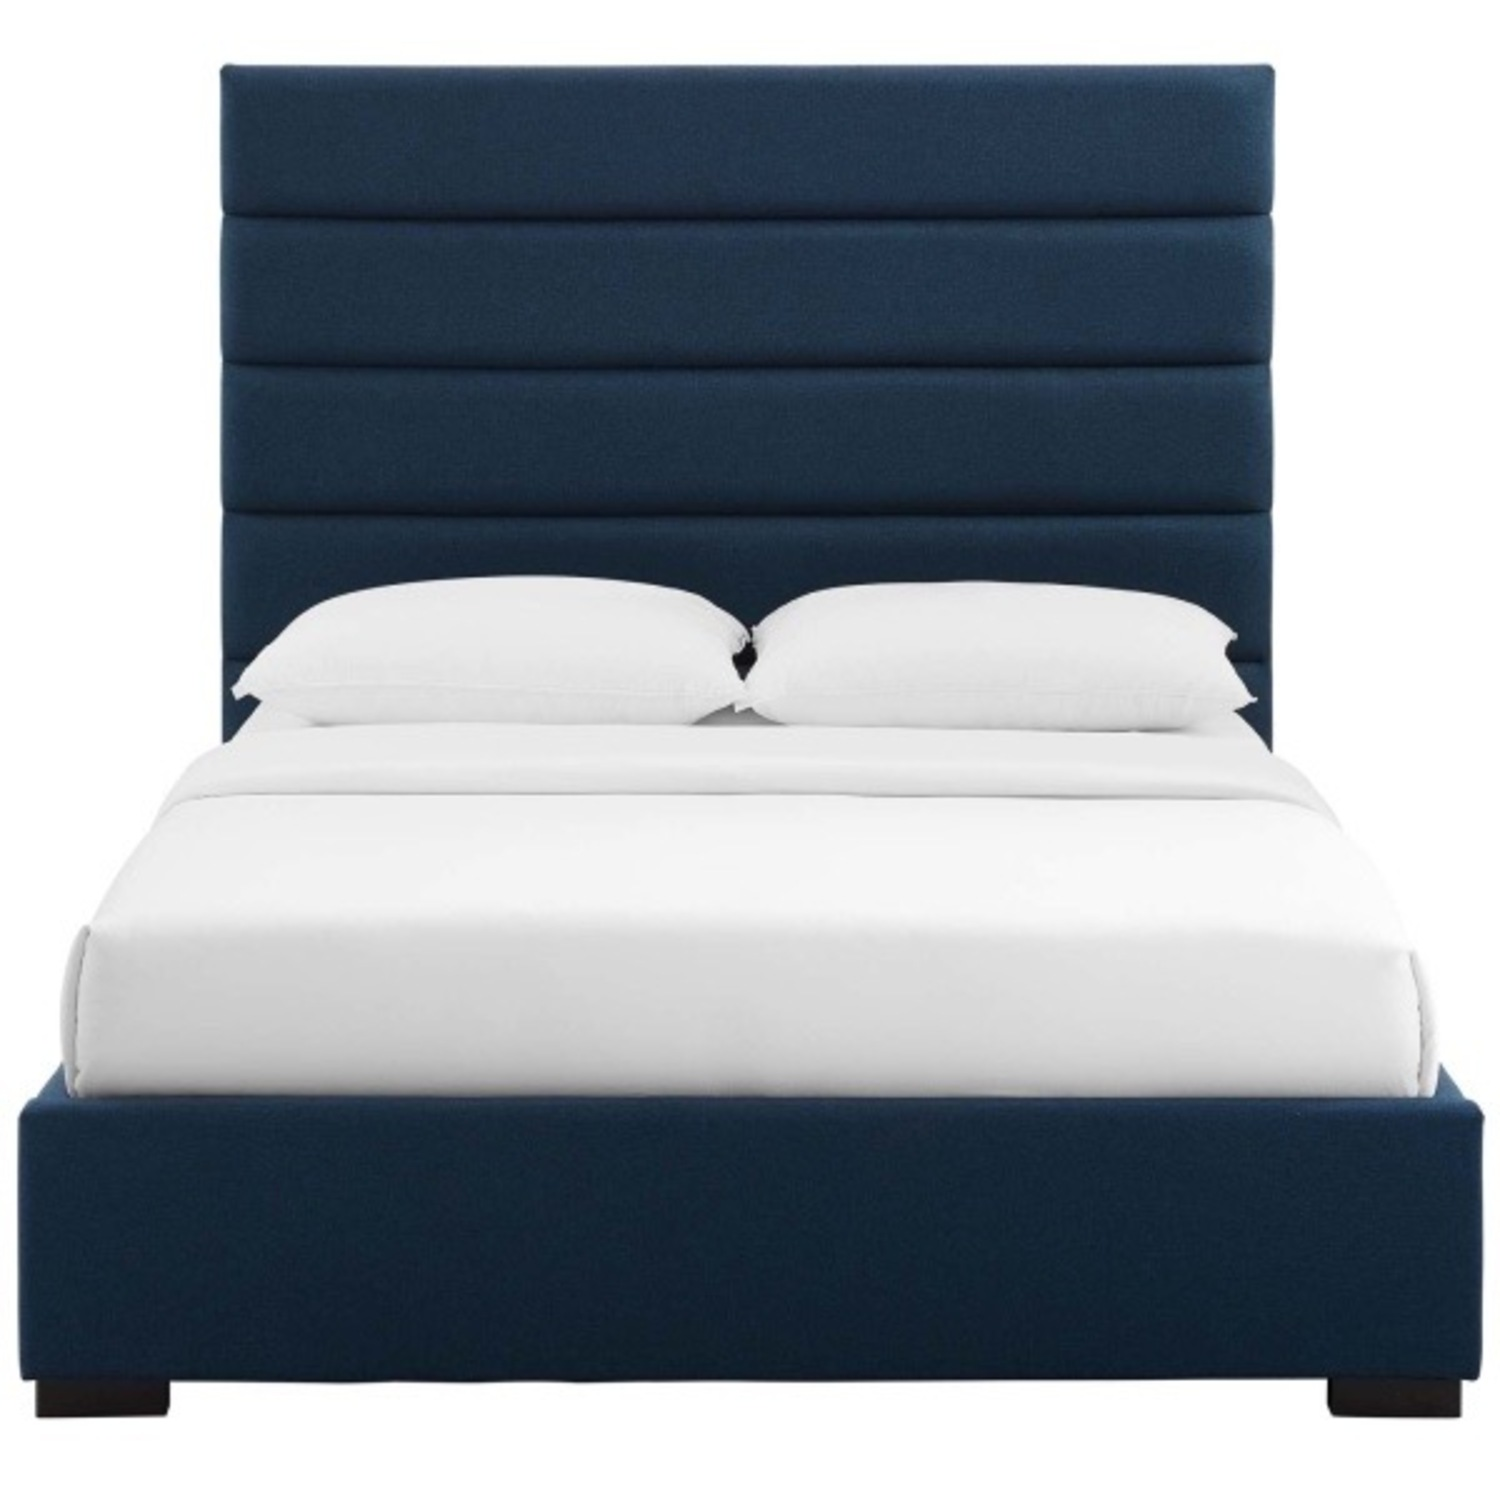 Modway Genevieve Upholstered Queen Bed - image-1